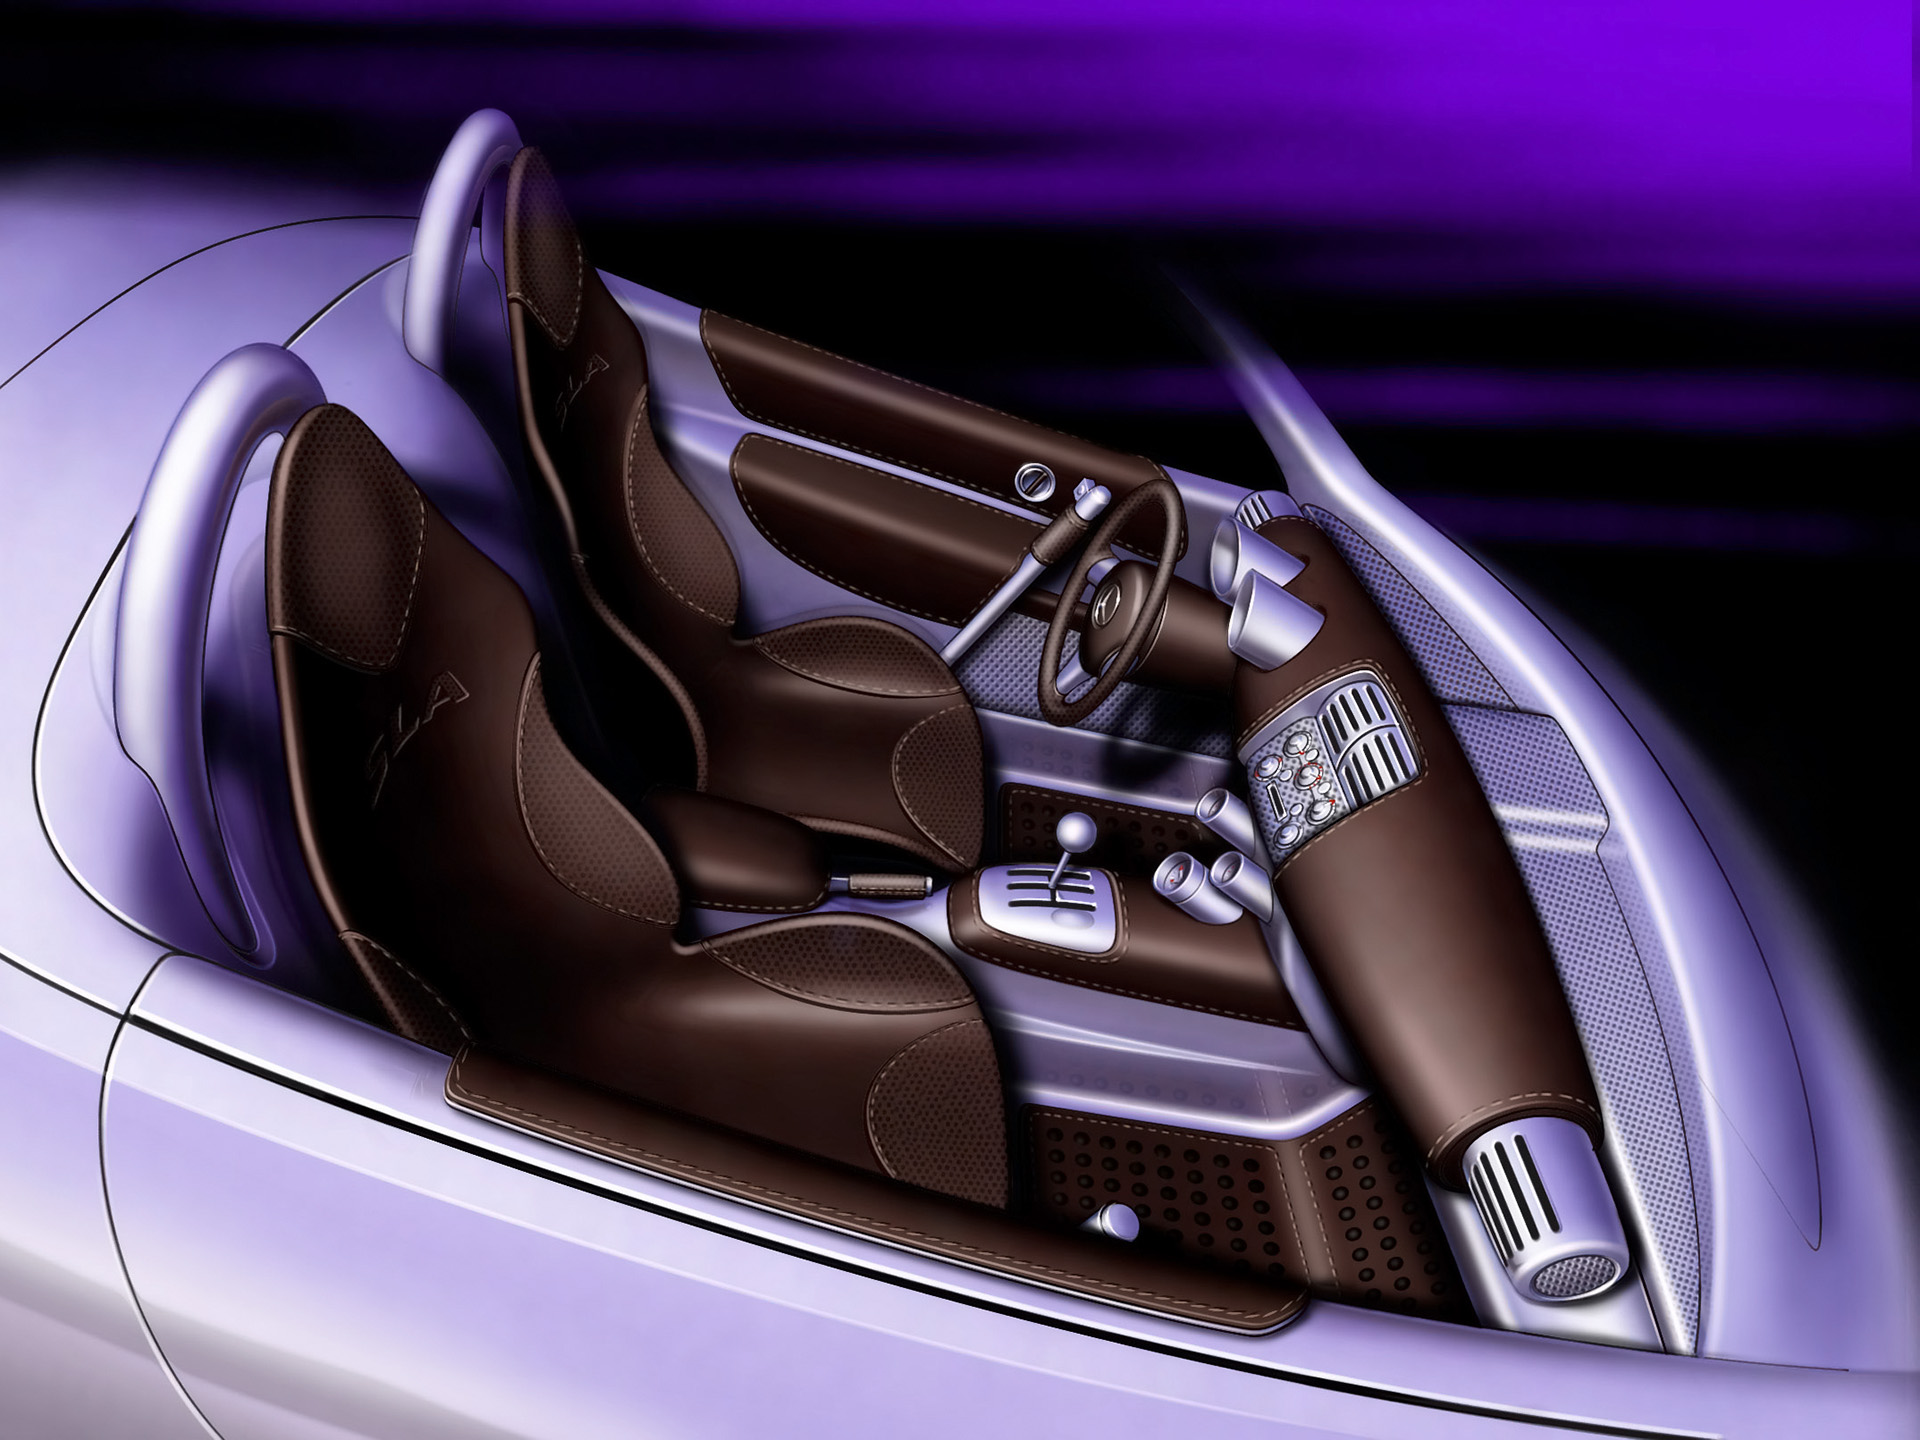 2000 Mercedes Benz Vision SLA Concept photo - 1